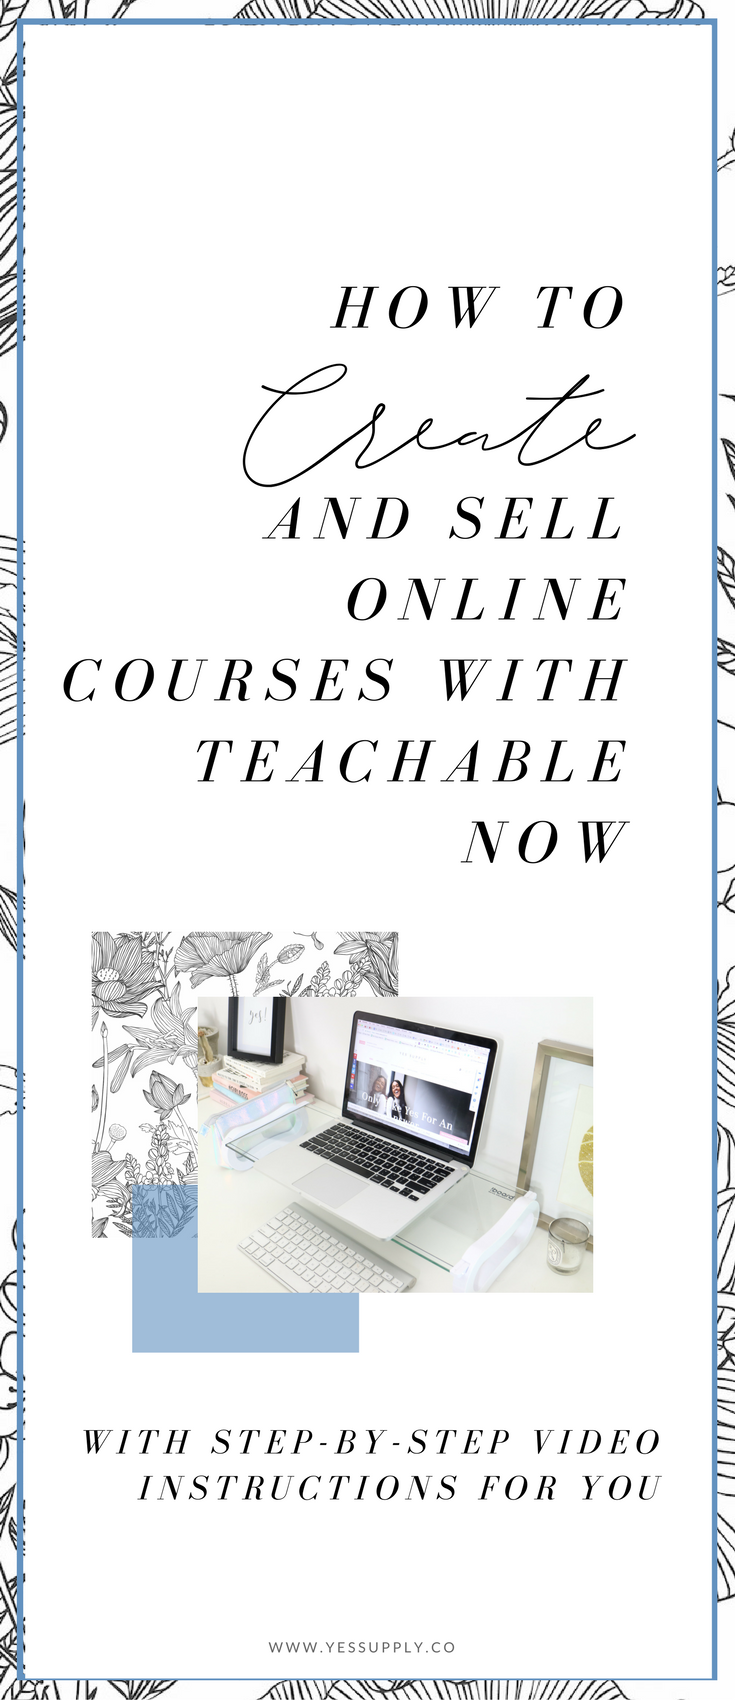 Ever wanted to create your own online course, and make passive income from sharing your knowledge and gifts. It's possible for you to create a 6 or even 7 figure business, selling course and digital products is a multiple billion dollar industry. Learn how to launch your online business with teachable as I walk you through step by step how to make it happen and make it simple for you to make money online doing what you love to do creating success from a freedom based business laptop lifestyle.